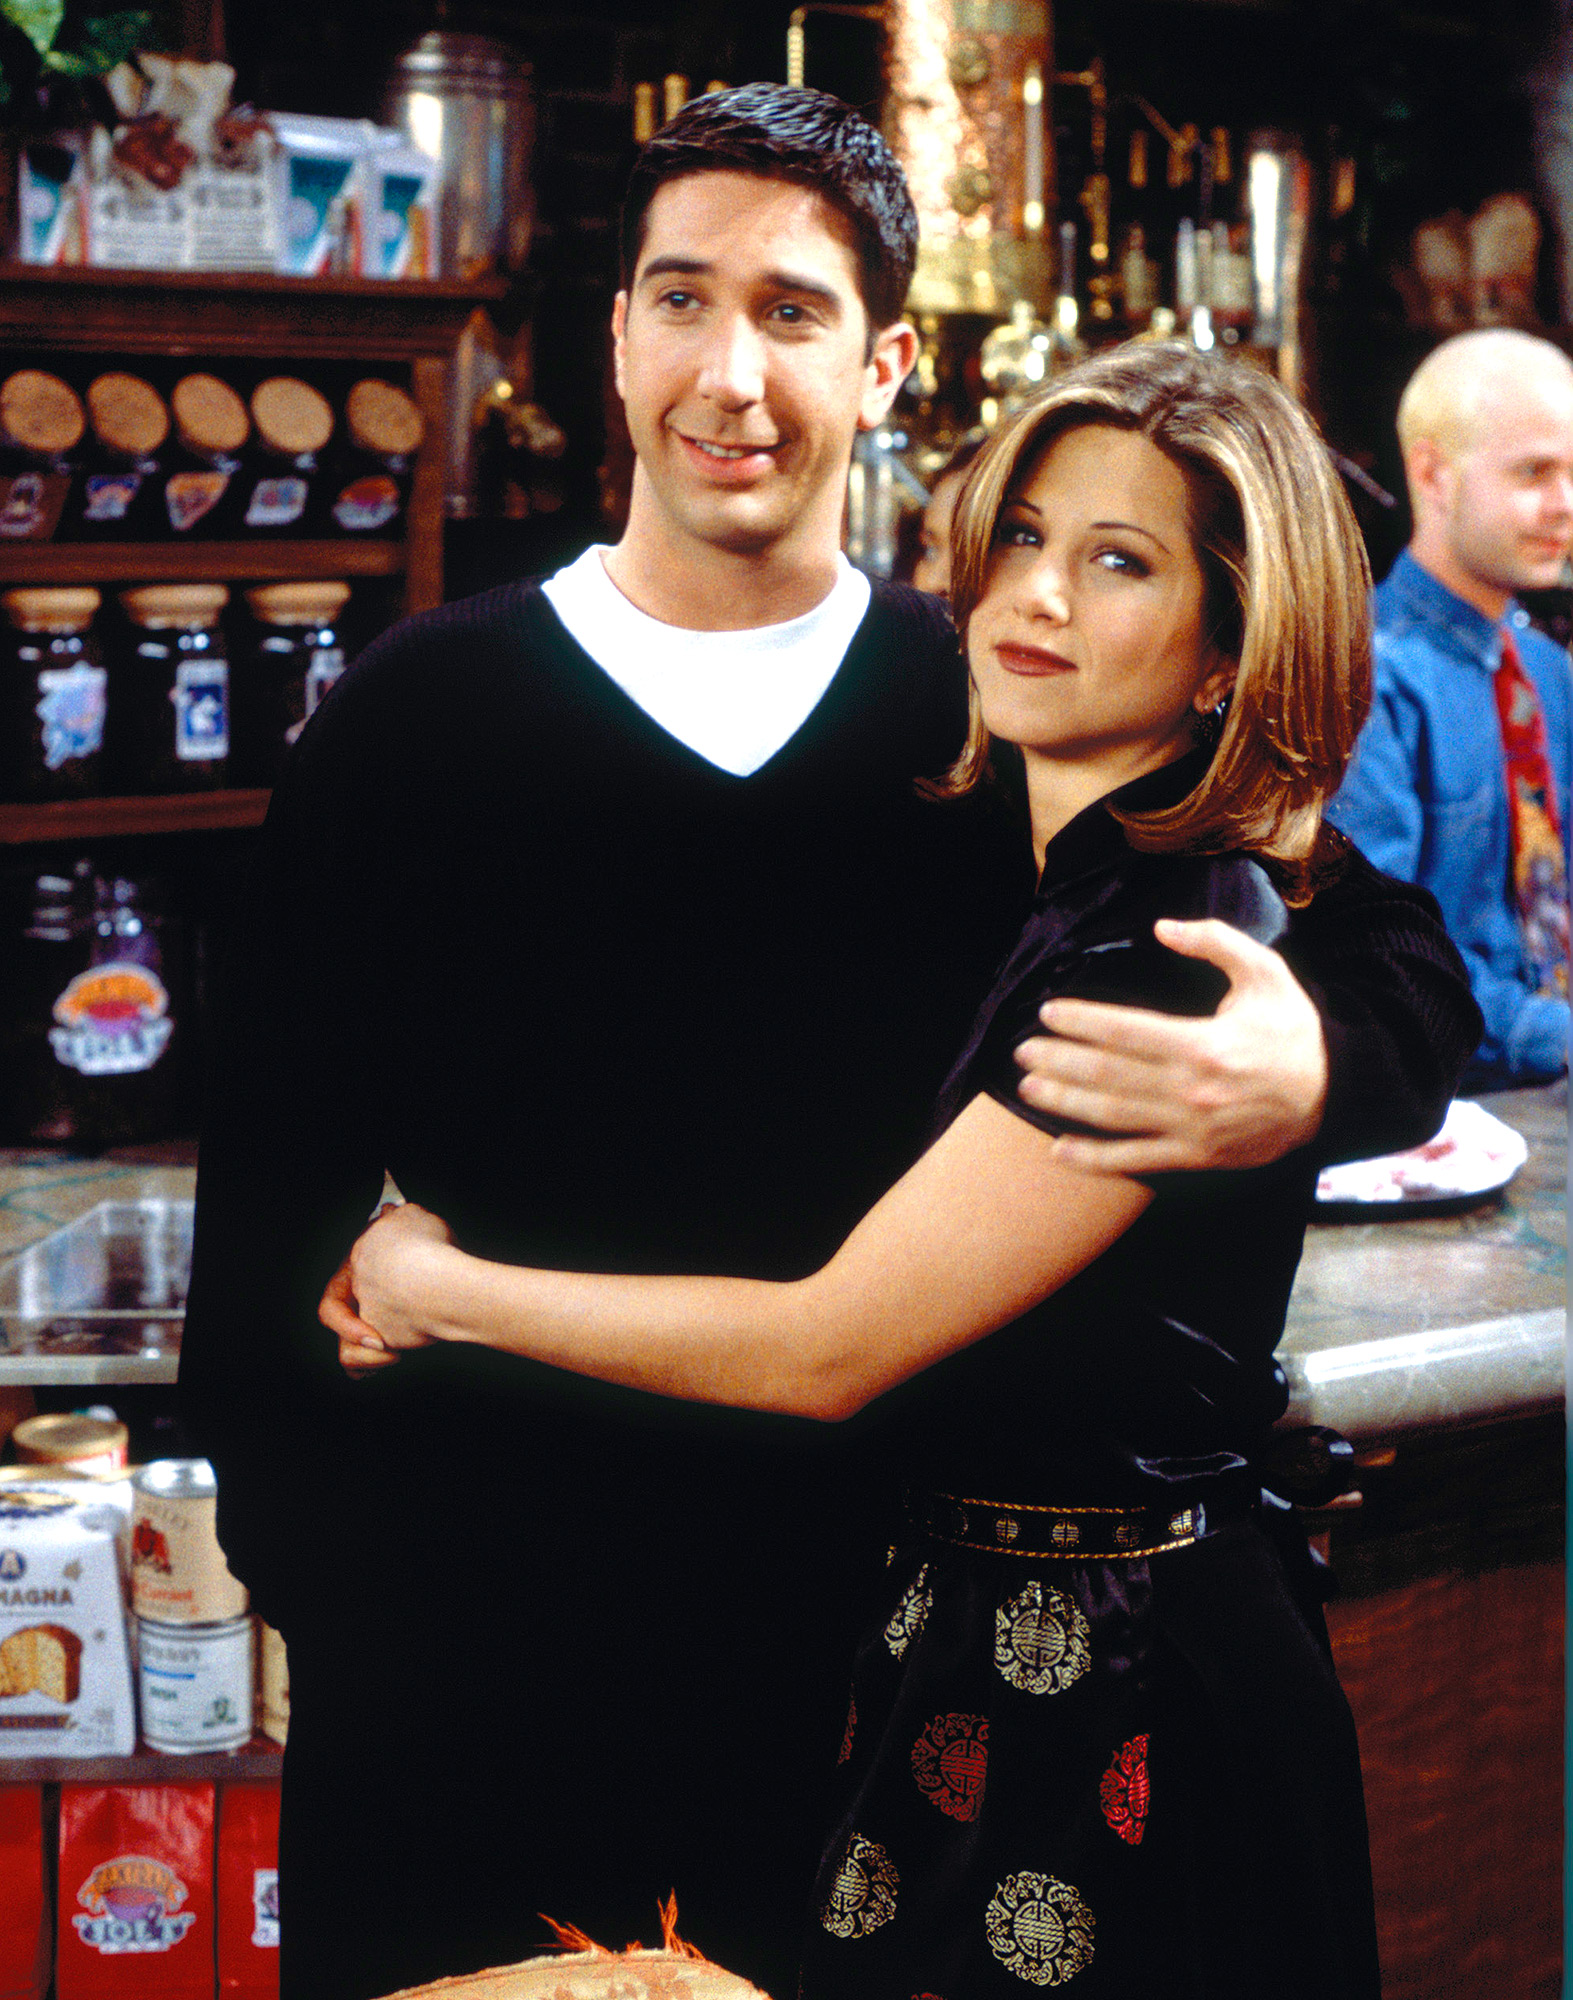 ROSS & RACHEL, FRIENDS: 236 EPISODES